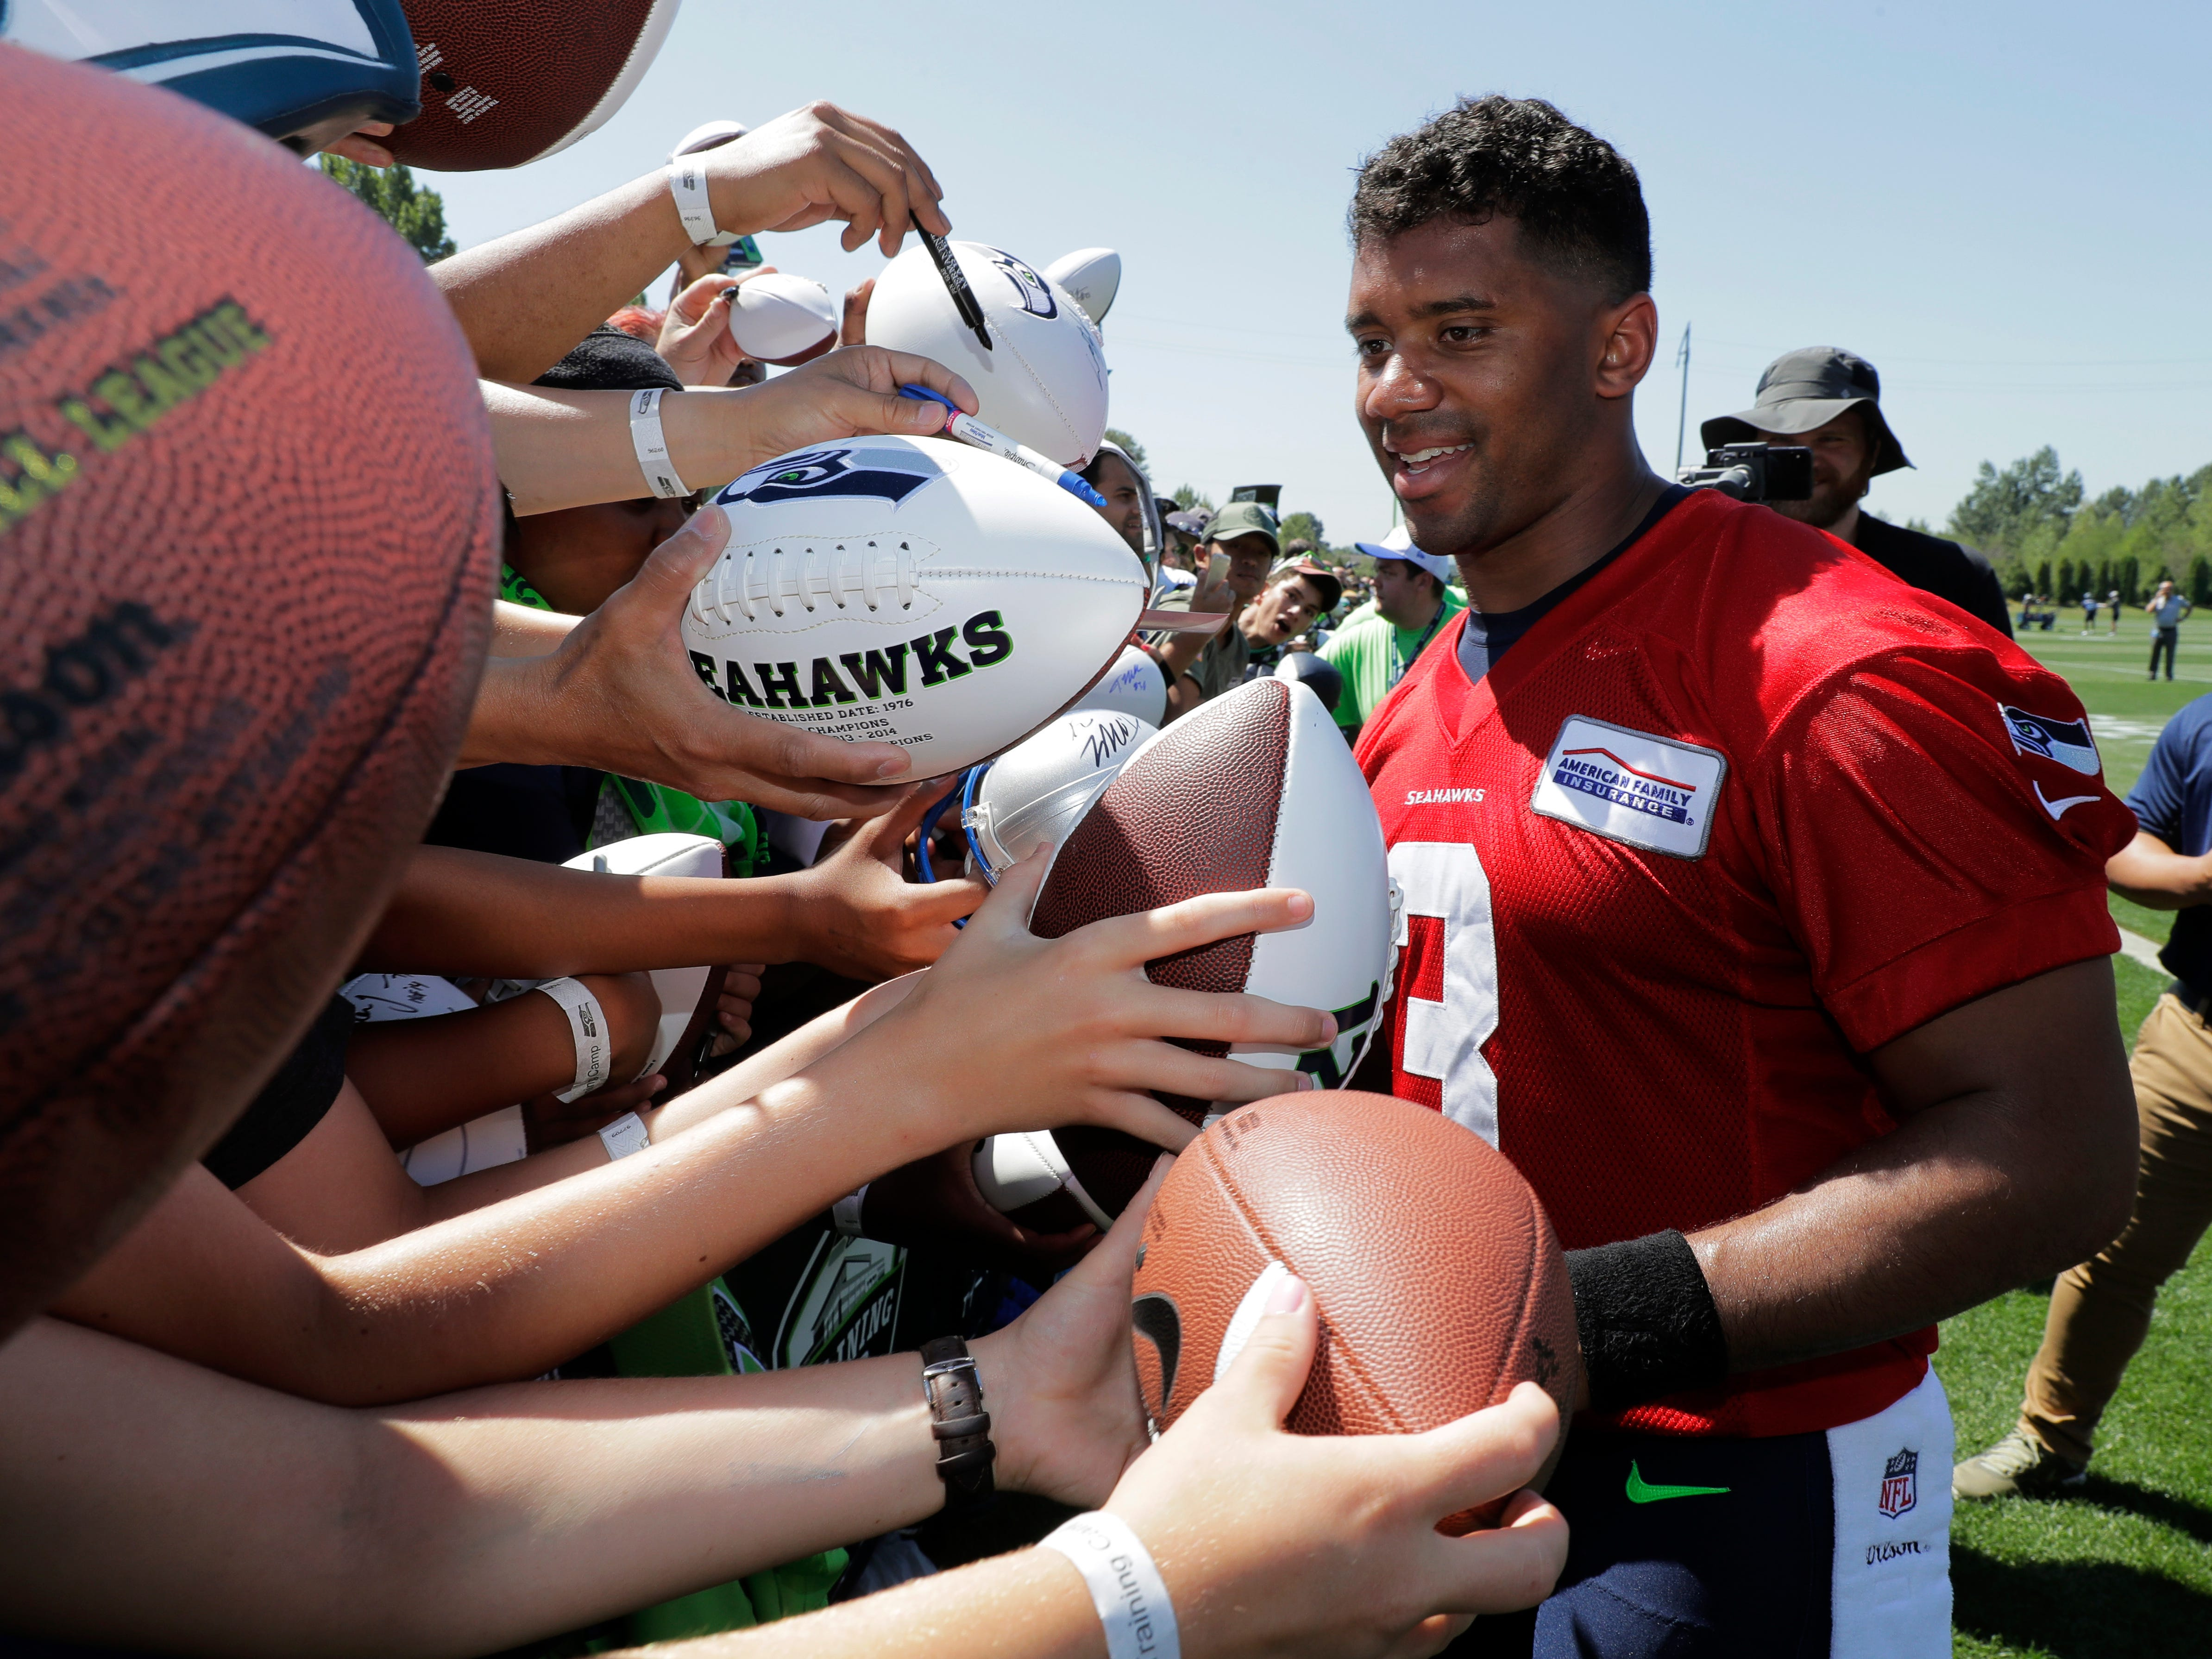 Seattle Seahawks quarterback Russell Wilson signs autographs after NFL football training camp, Thursday, July 26, 2018, in Renton, Wash. (AP Photo/Ted S. Warren)